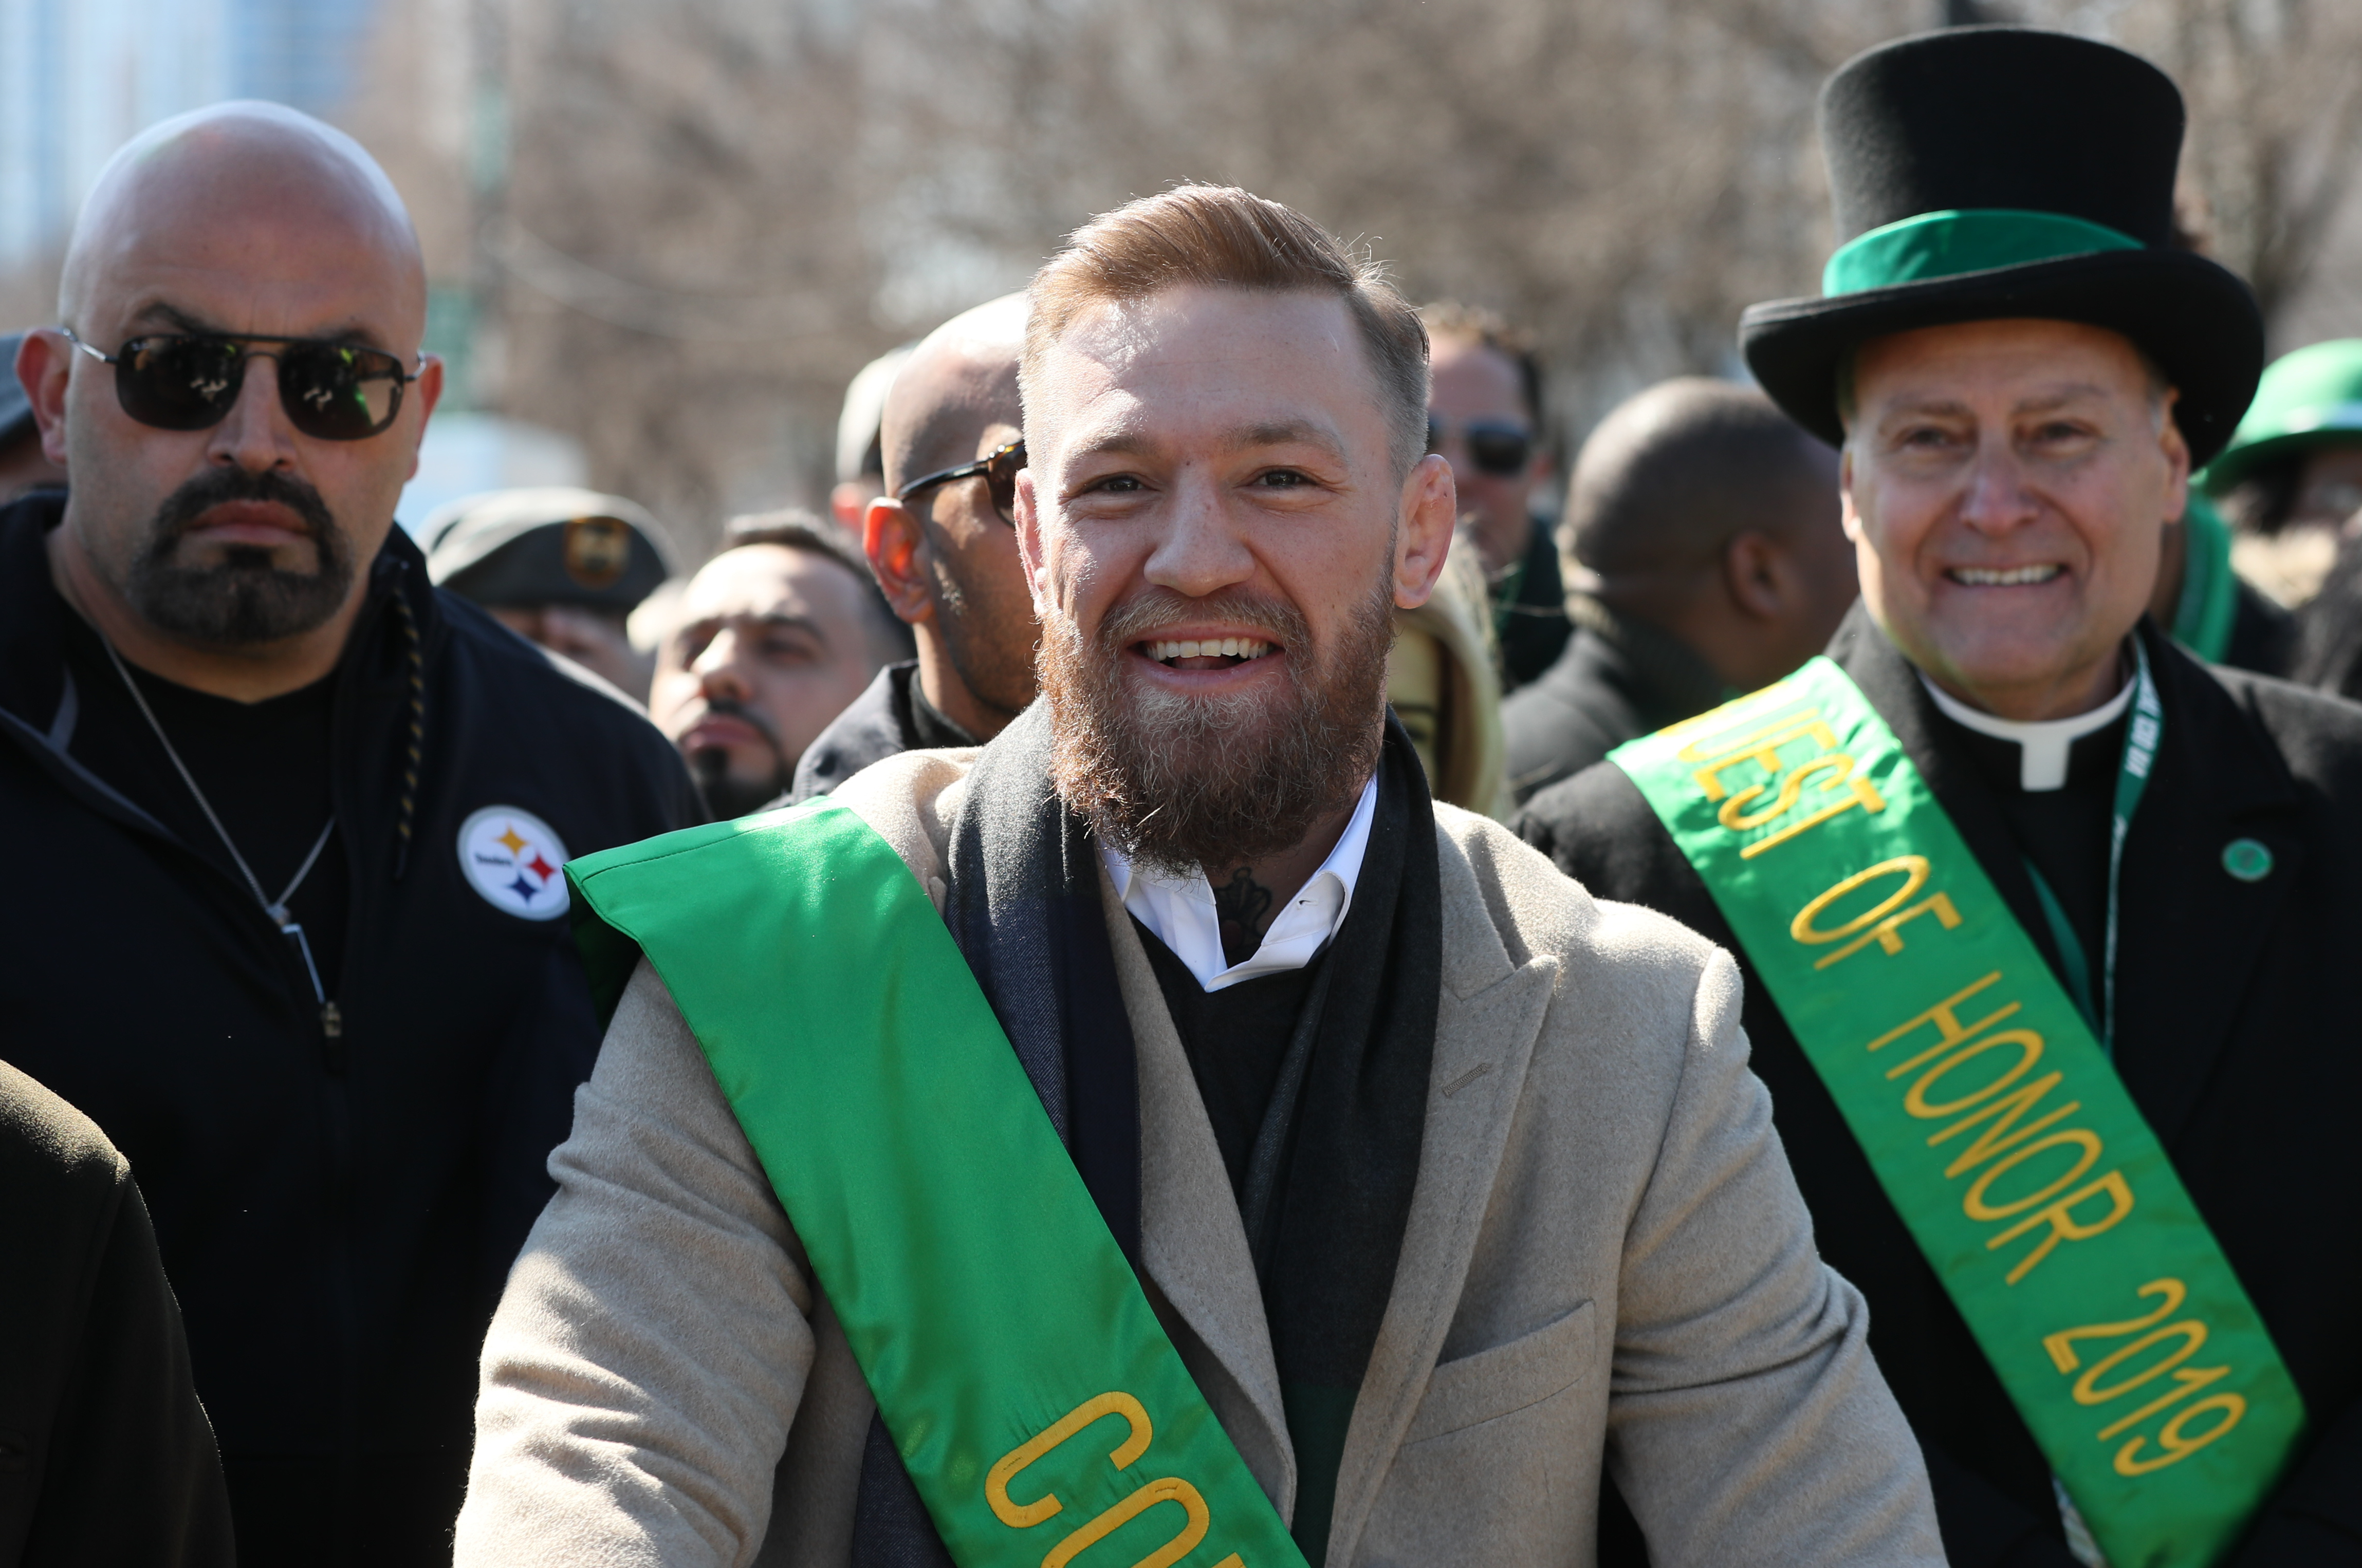 McGregor was most recently seen at Chicago's St Patrick's Day parade. Credit: PA